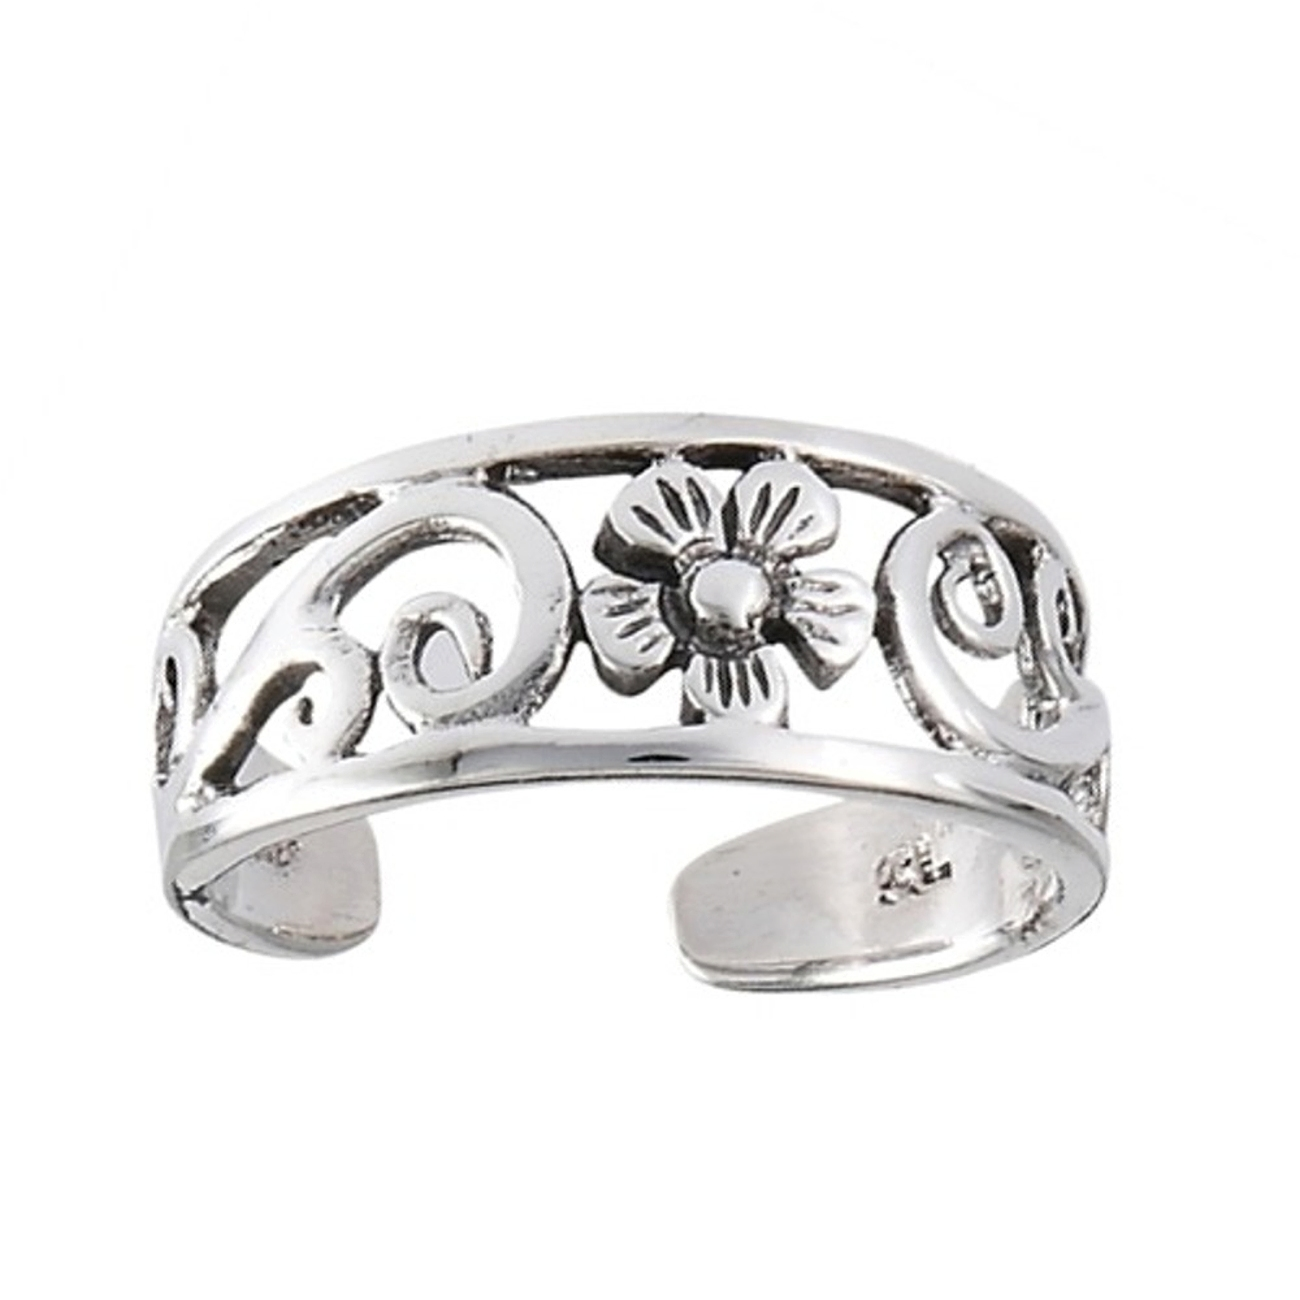 Wide Graduated Open Band Daisy Flower Vine Adjustable Toe Ring